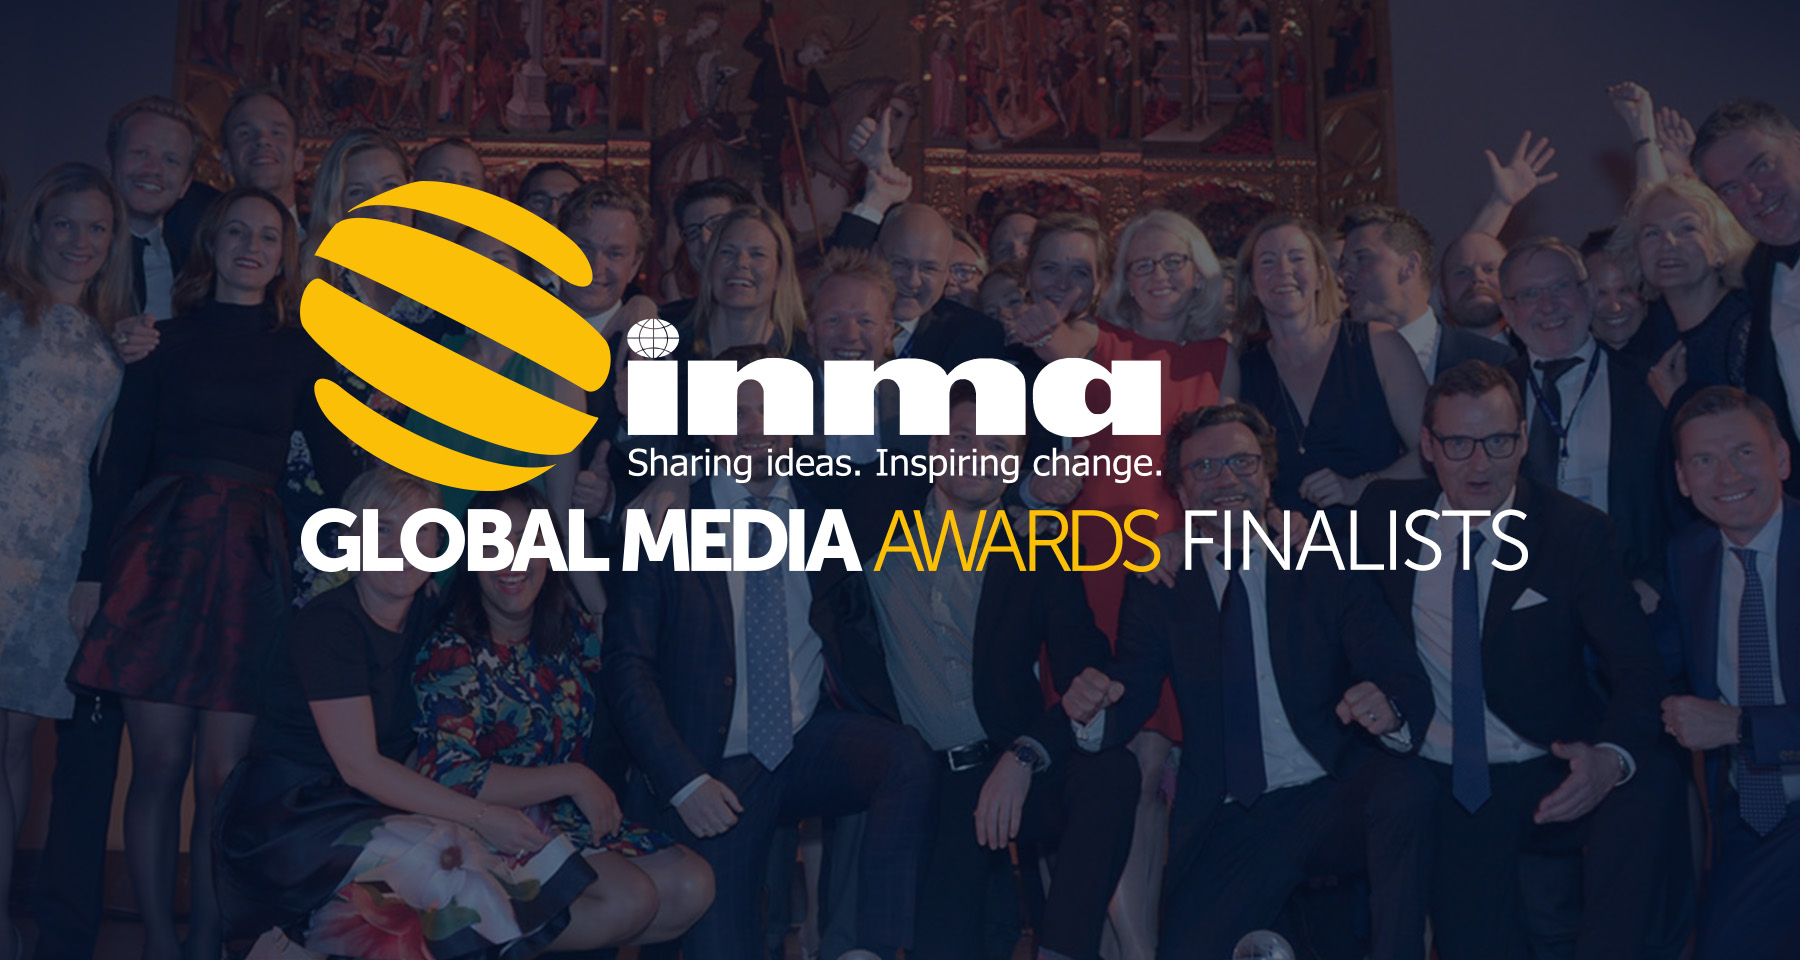 INMA announces Global Media Awards finalists, focus on innovation